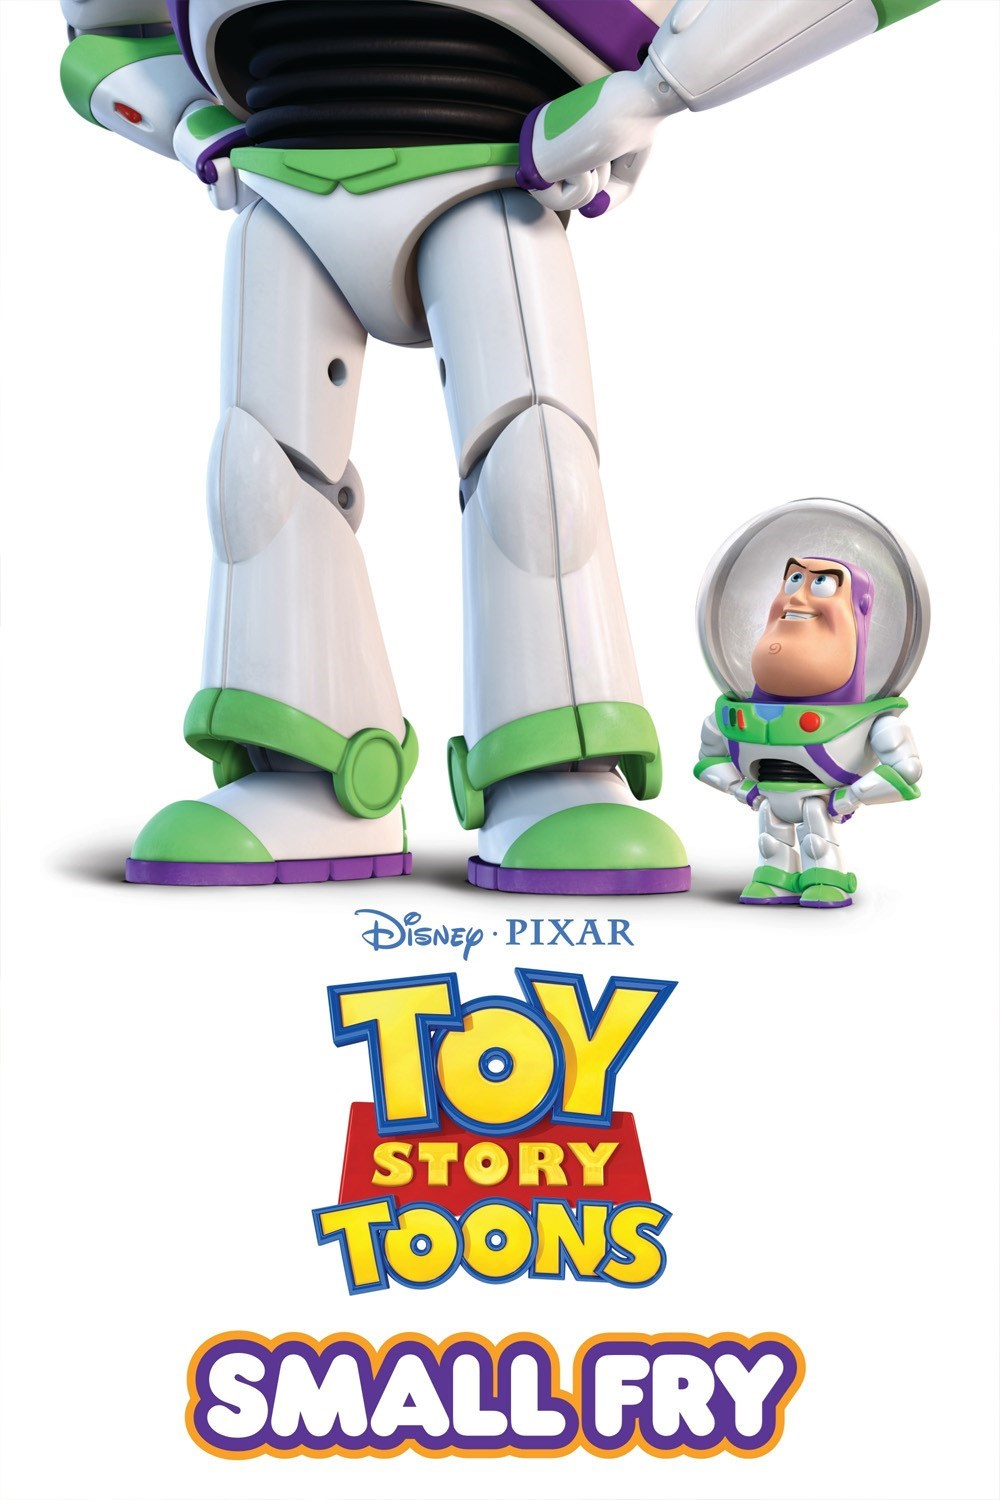 Pixar disney Toy Story Toons : mini buzz small fry affiche poster